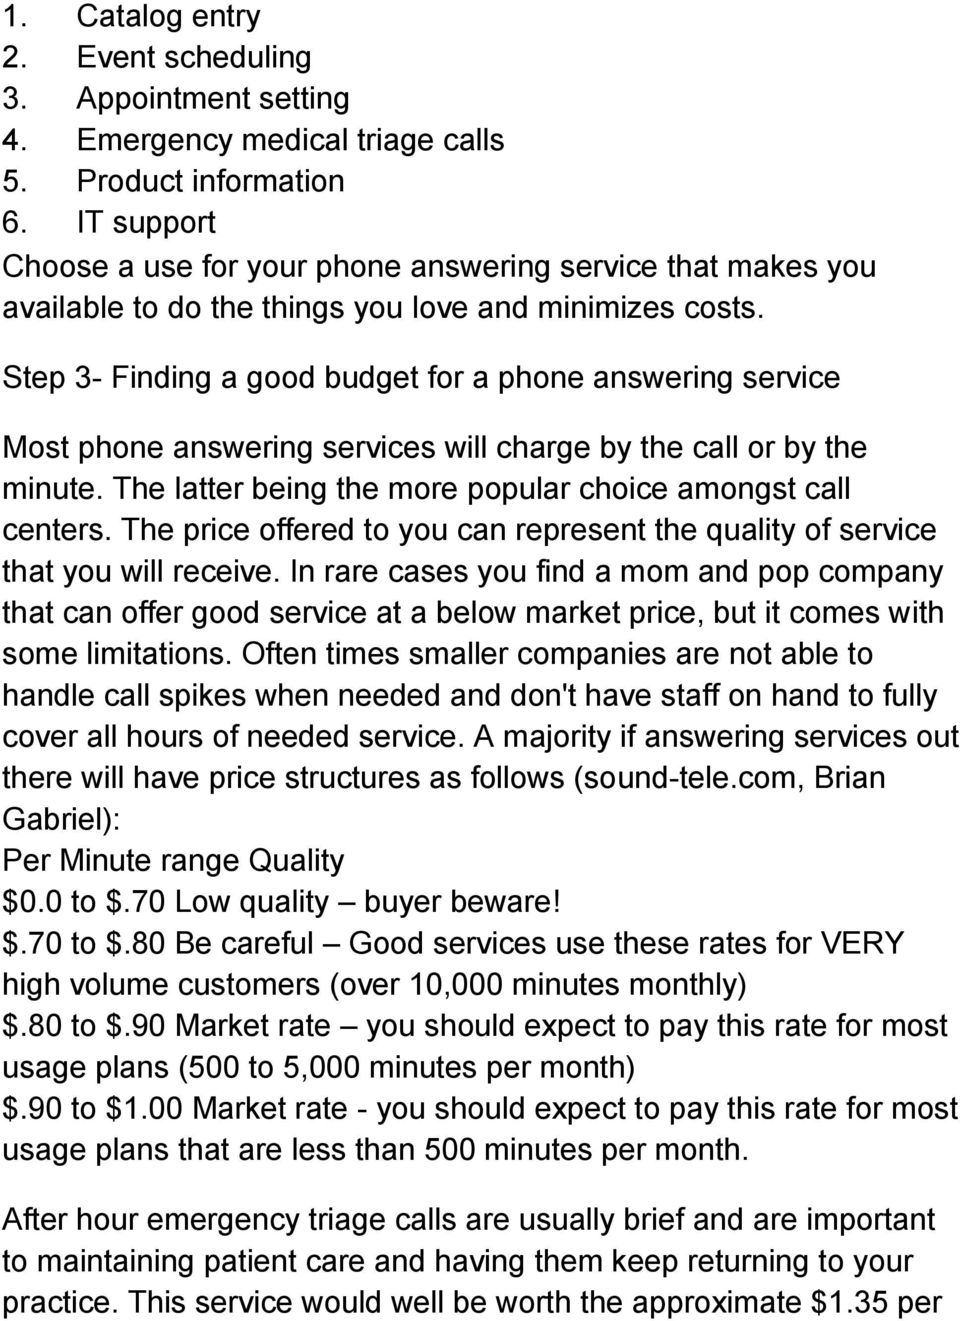 Step 3- Finding a good budget for a phone answering service Most phone answering services will charge by the call or by the minute. The latter being the more popular choice amongst call centers.